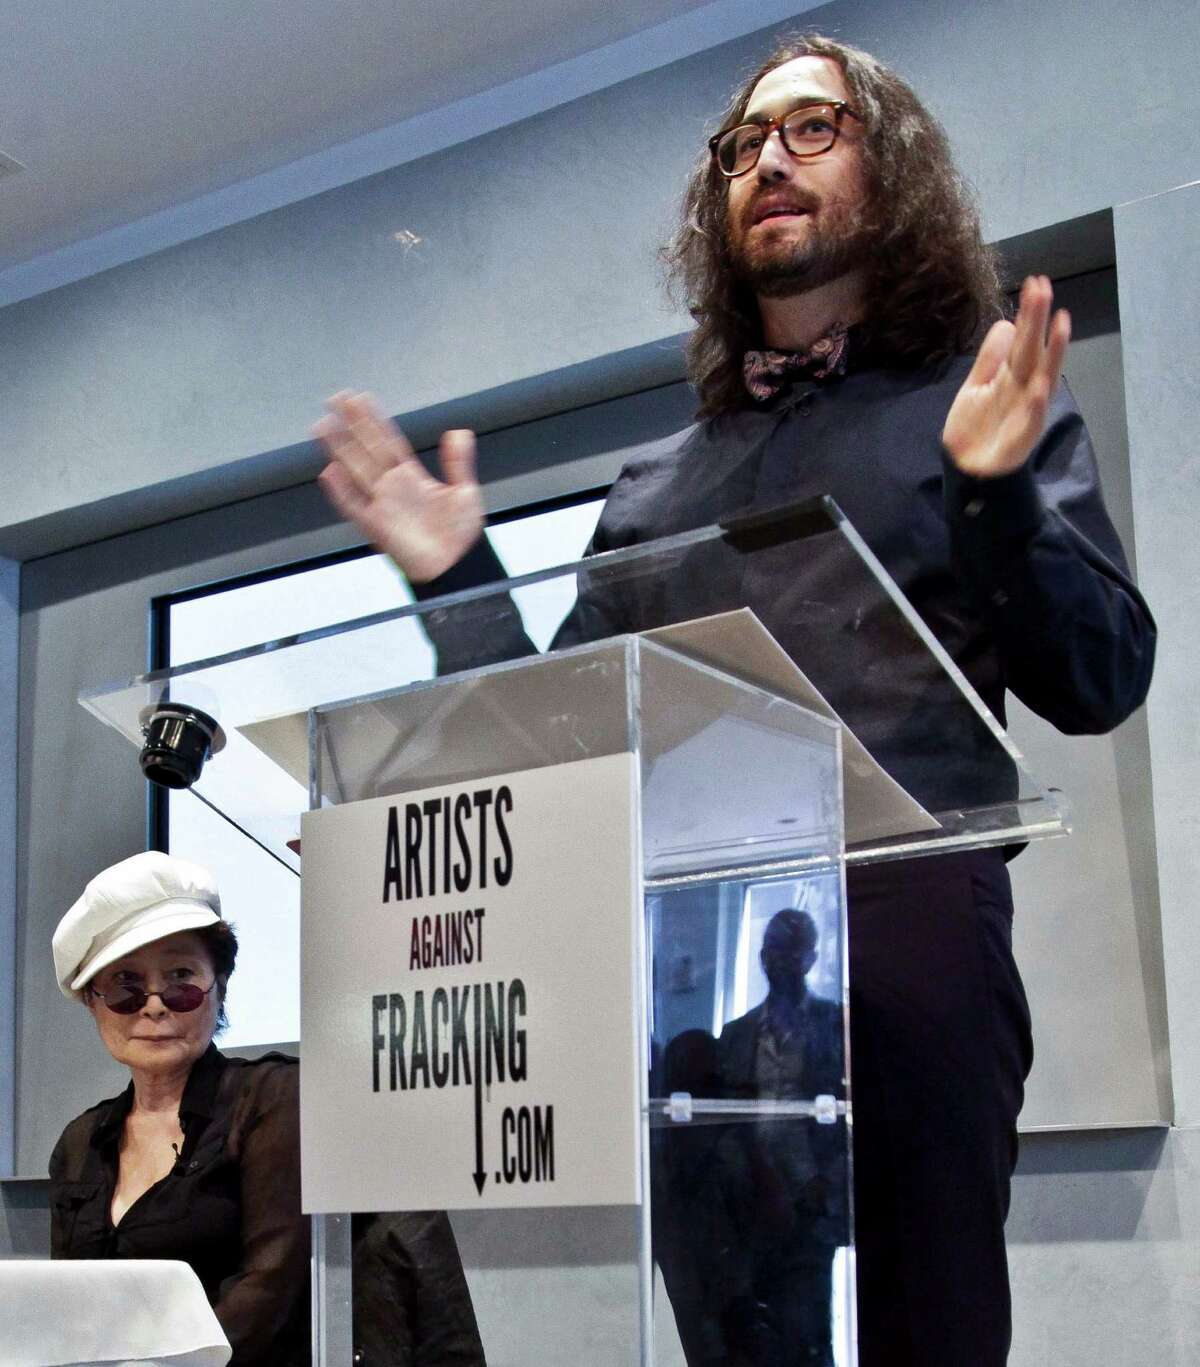 """Yoko Ono, left, listens as her son Sean Lennon speaks during a news conference to launch a coalition of artists opposing hydraulic fracturing on Wednesday, Aug. 29, 2012 in New York. The formation of the group, called Artists Against Fracking, comes as New York Gov. Andrew Cuomo decides whether to allow shale gas drilling using high-volume hydraulic fracturing called hydrofracking. The group says such drilling is harmful and poses the threat of contamination. They say they want to spread awareness of the issue through """"peaceful democratic action."""" Cuomo is expected to allow drilling to begin on a limited basis near the Pennsylvania border. The group is comprised of 146 members including Lady Gaga, Paul McCartney and Alec Baldwin. (AP Photo/Bebeto Matthews)"""